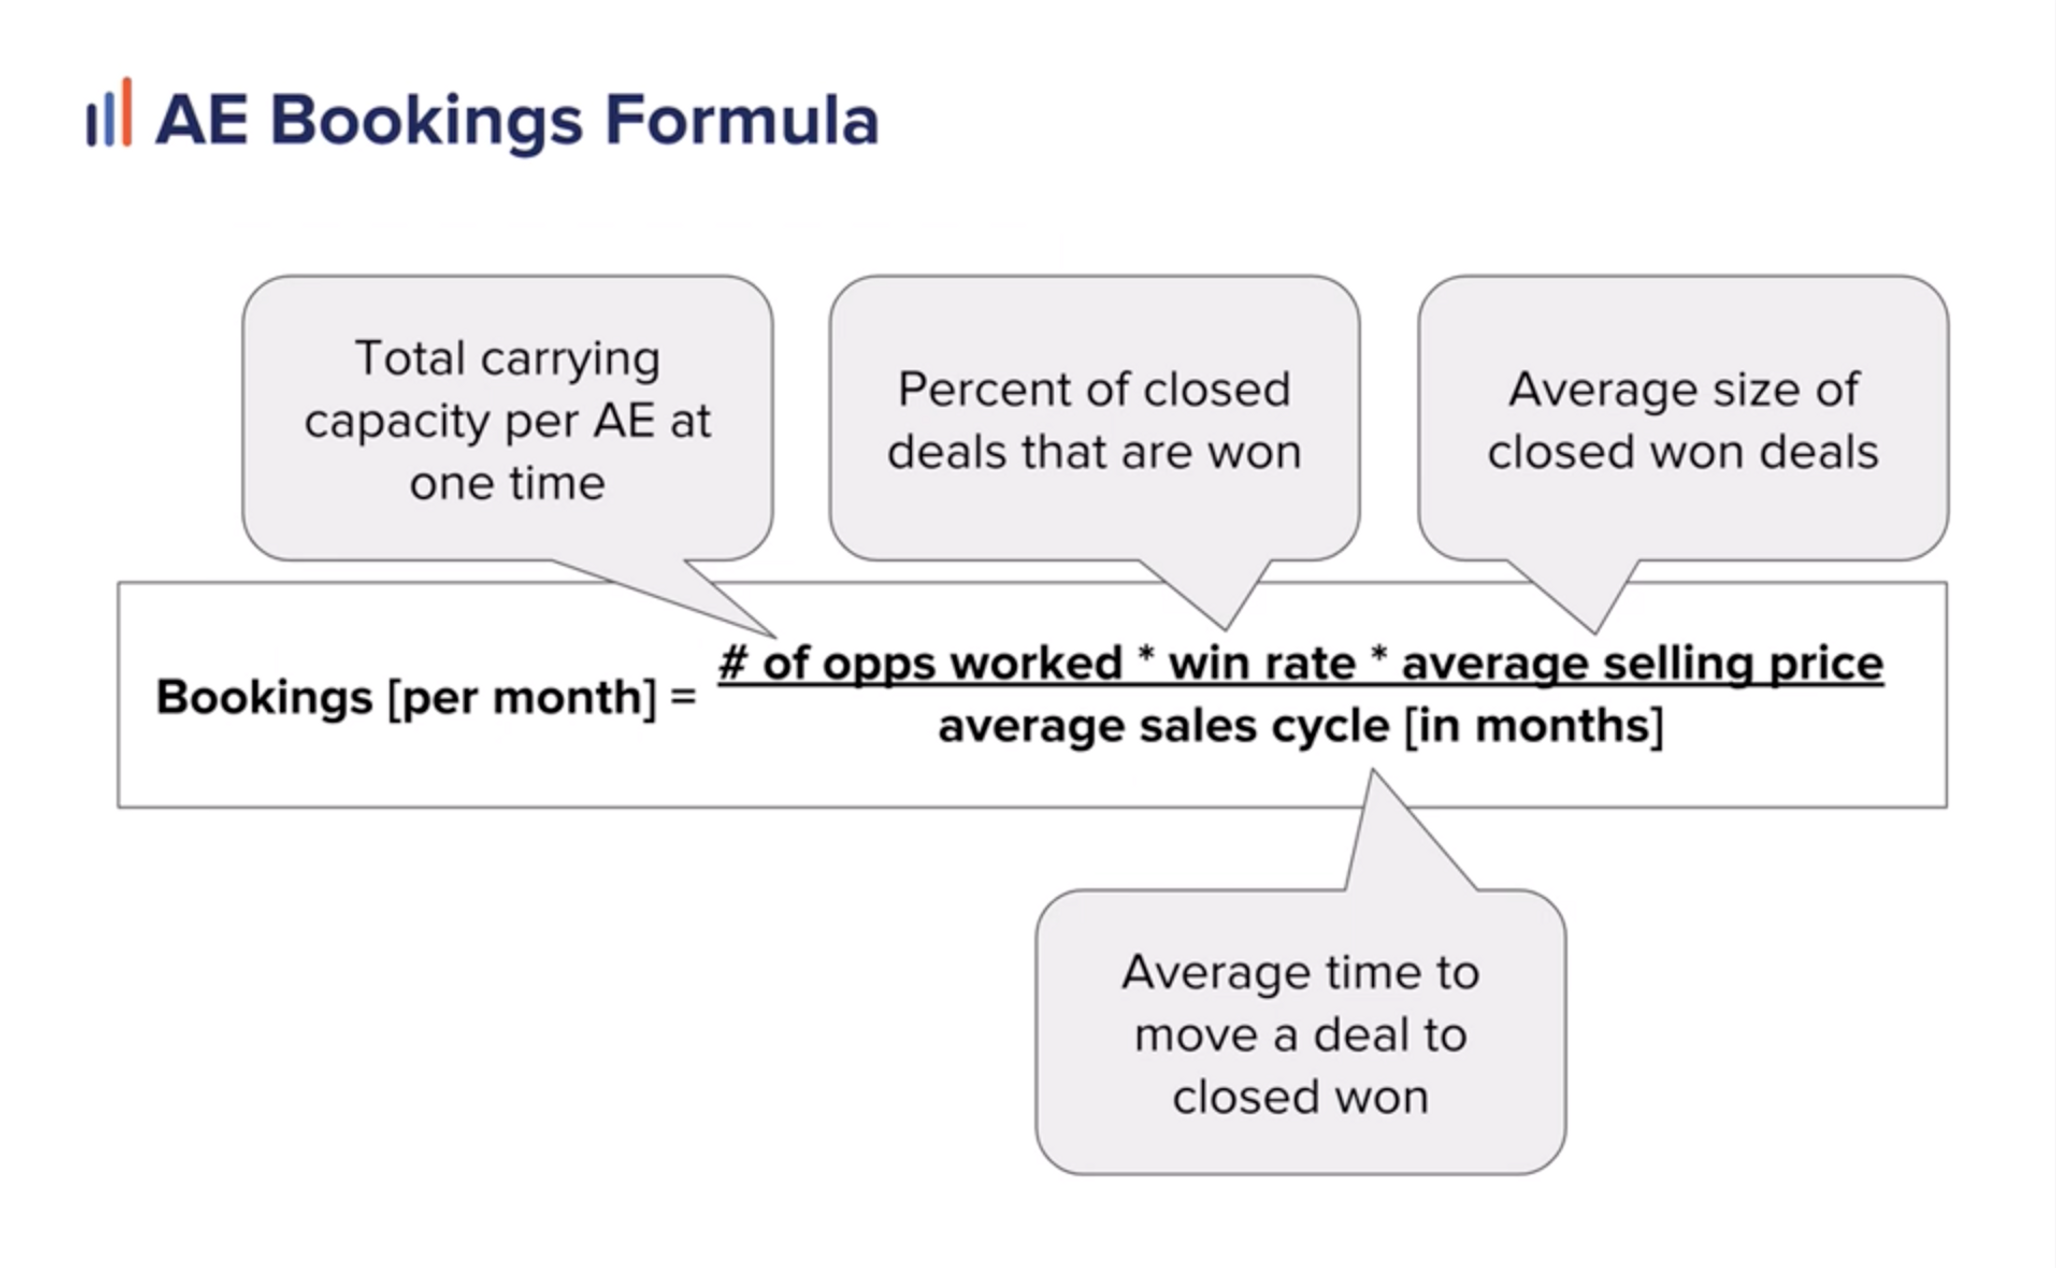 Formula to calculate monthly bookings for AEs